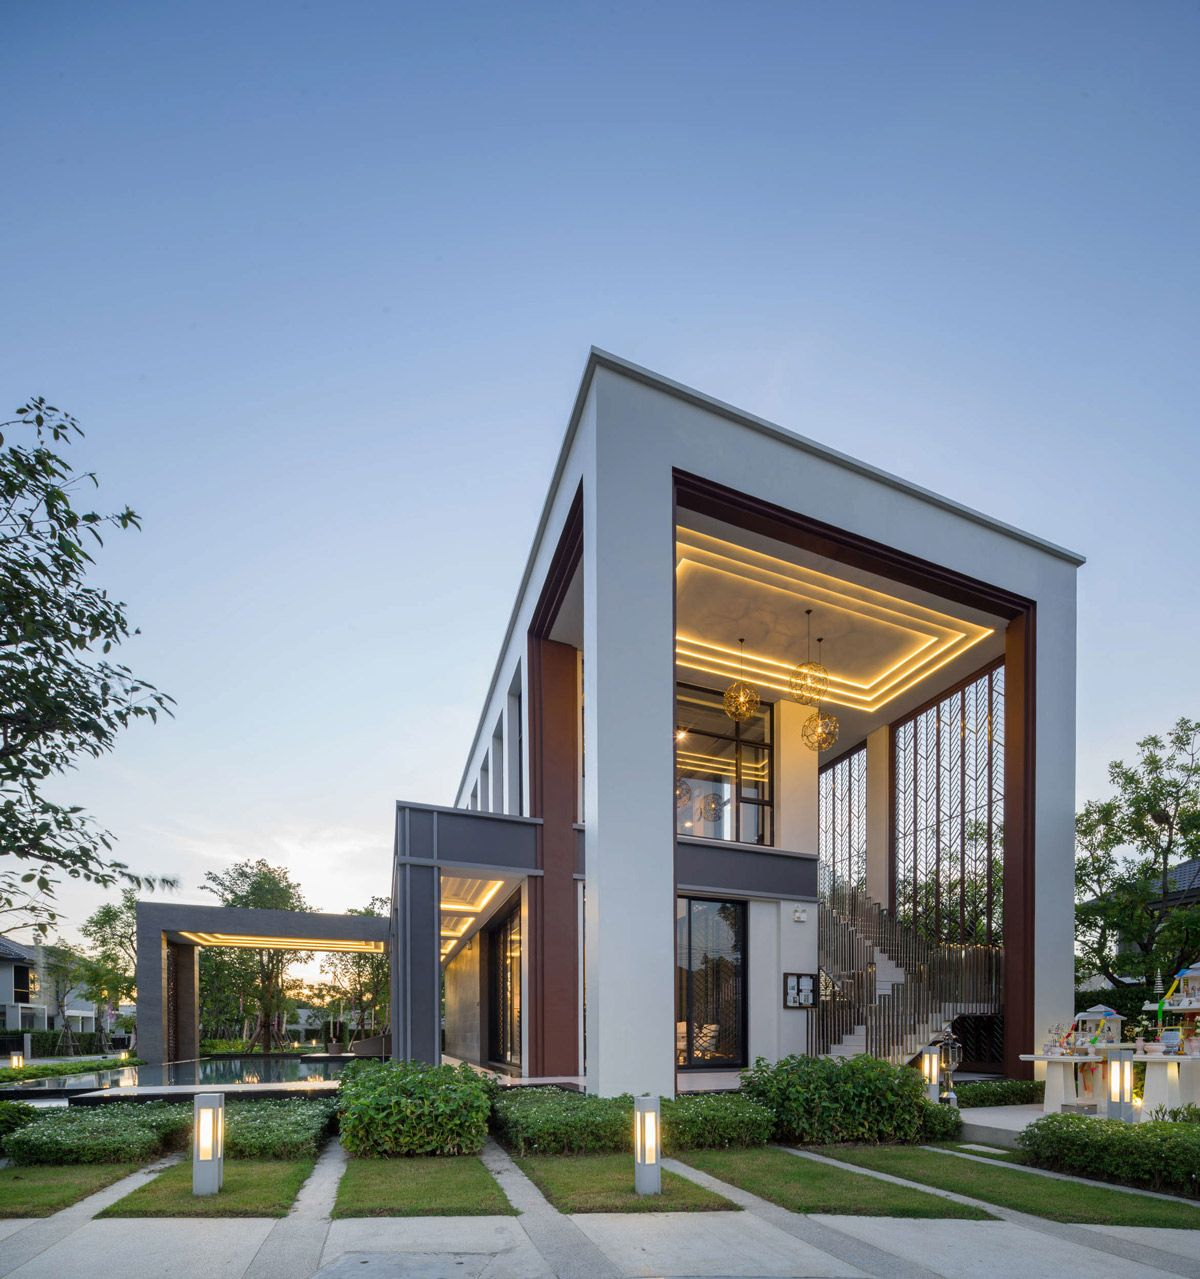 50 Stunning Modern Home Exterior Designs That Have Awesome: 50 Stunning Modern Home Exterior Designs That Have Awesome